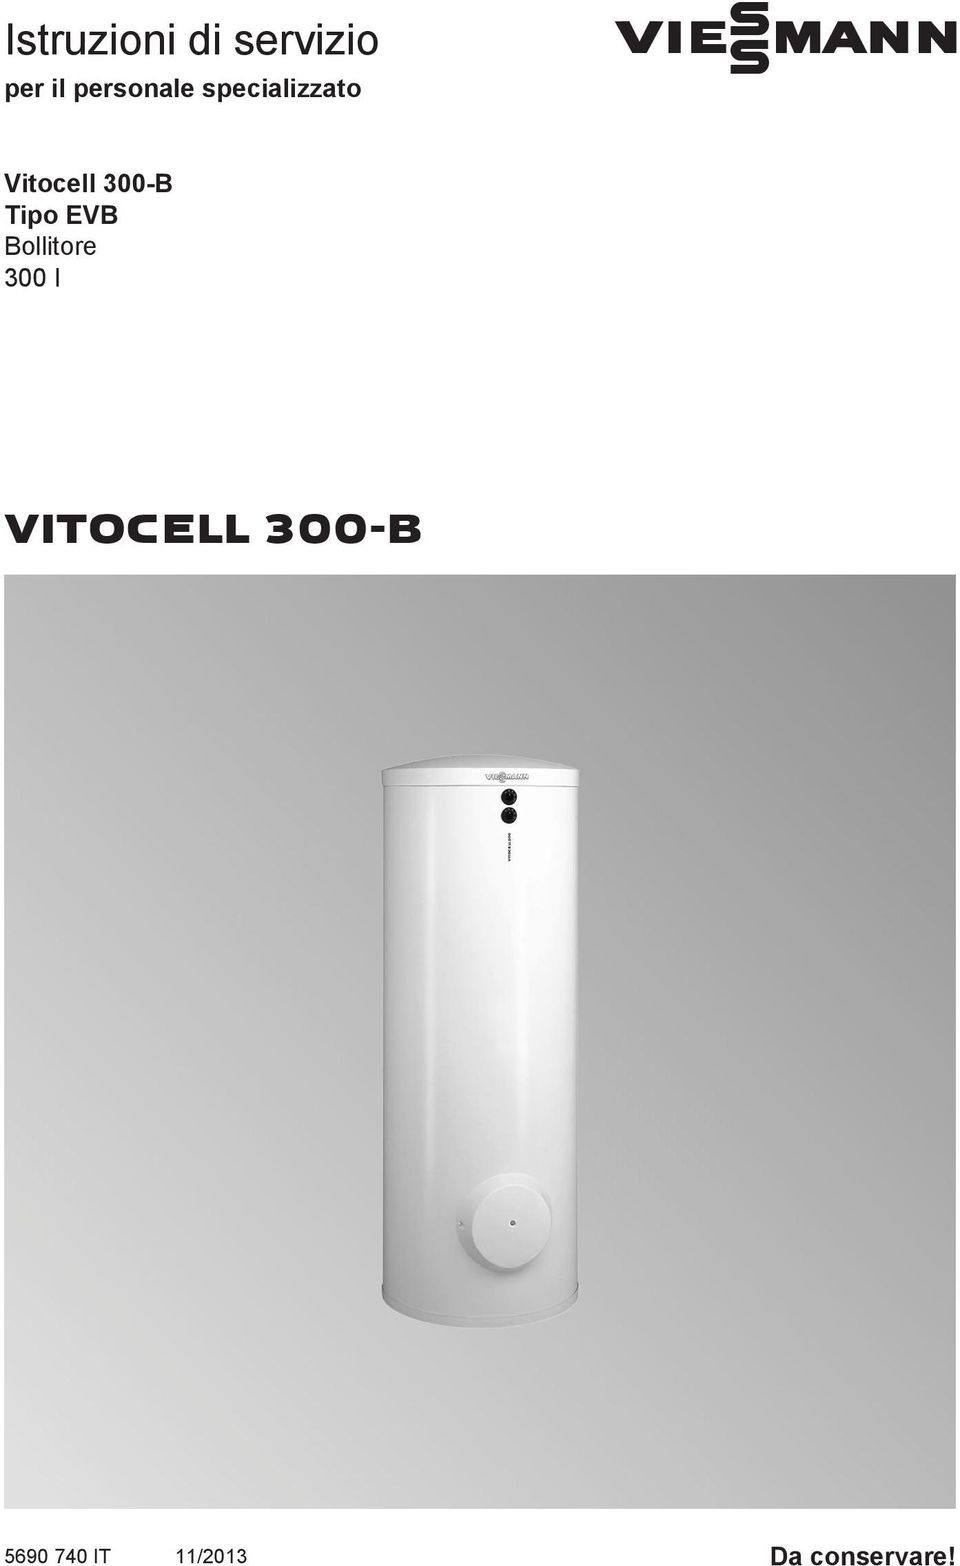 Vitocell 300-B Tipo EVB Bollitore